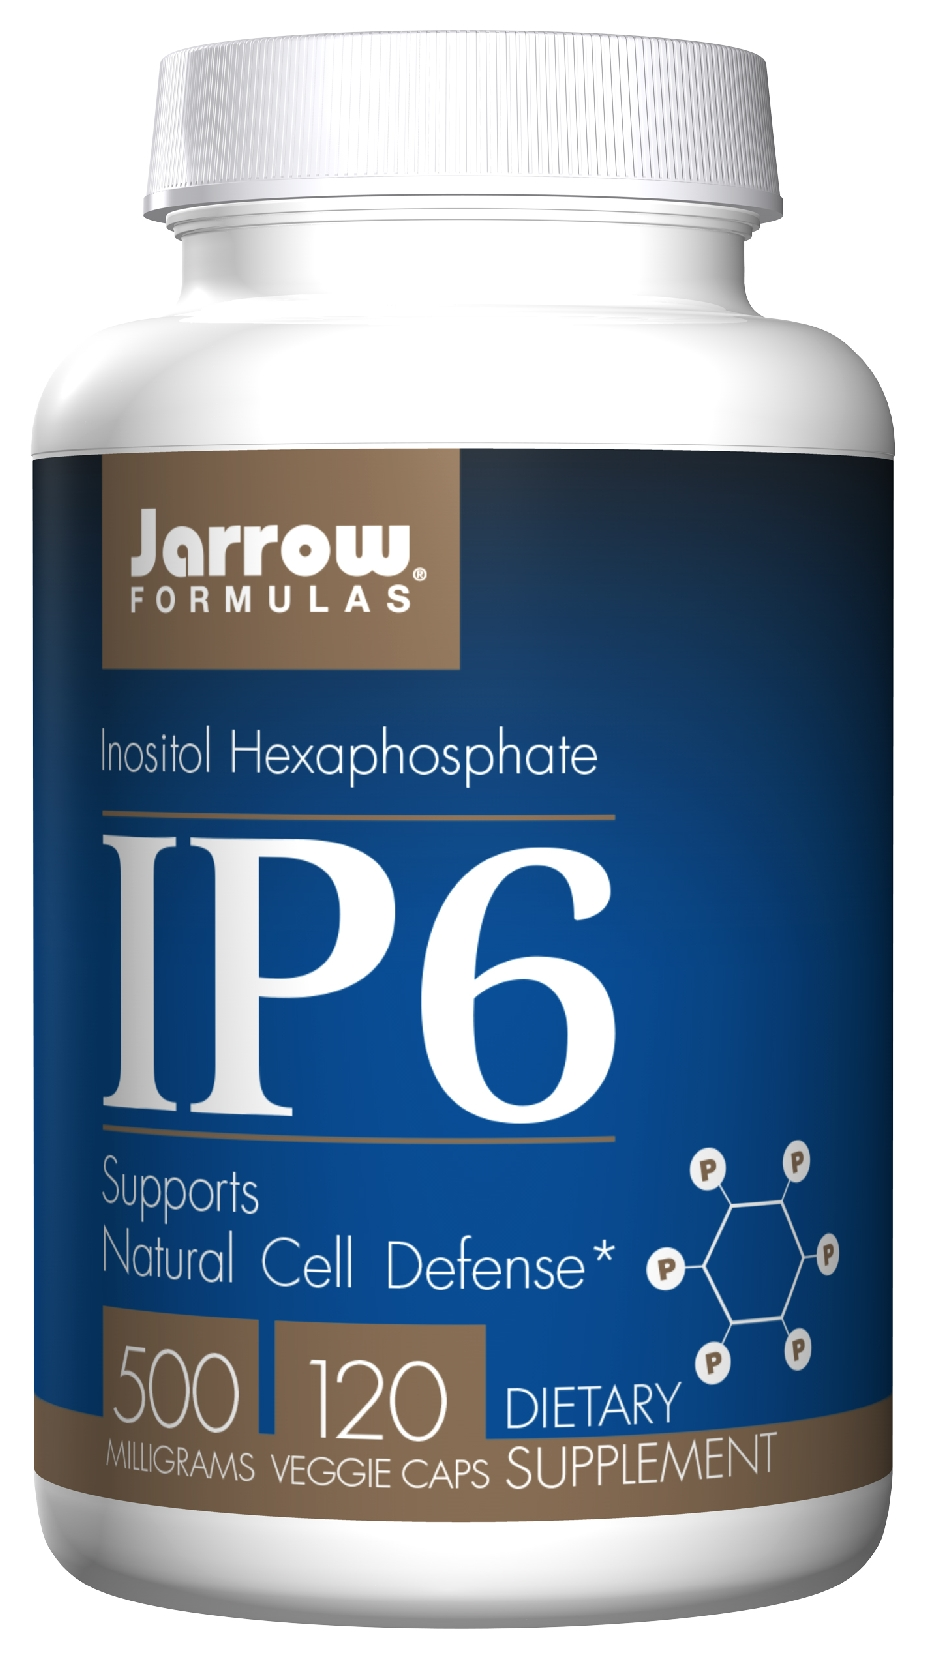 IP6 Inositol Hexaphosphate 500 mg 120 caps by Jarrow Formulas